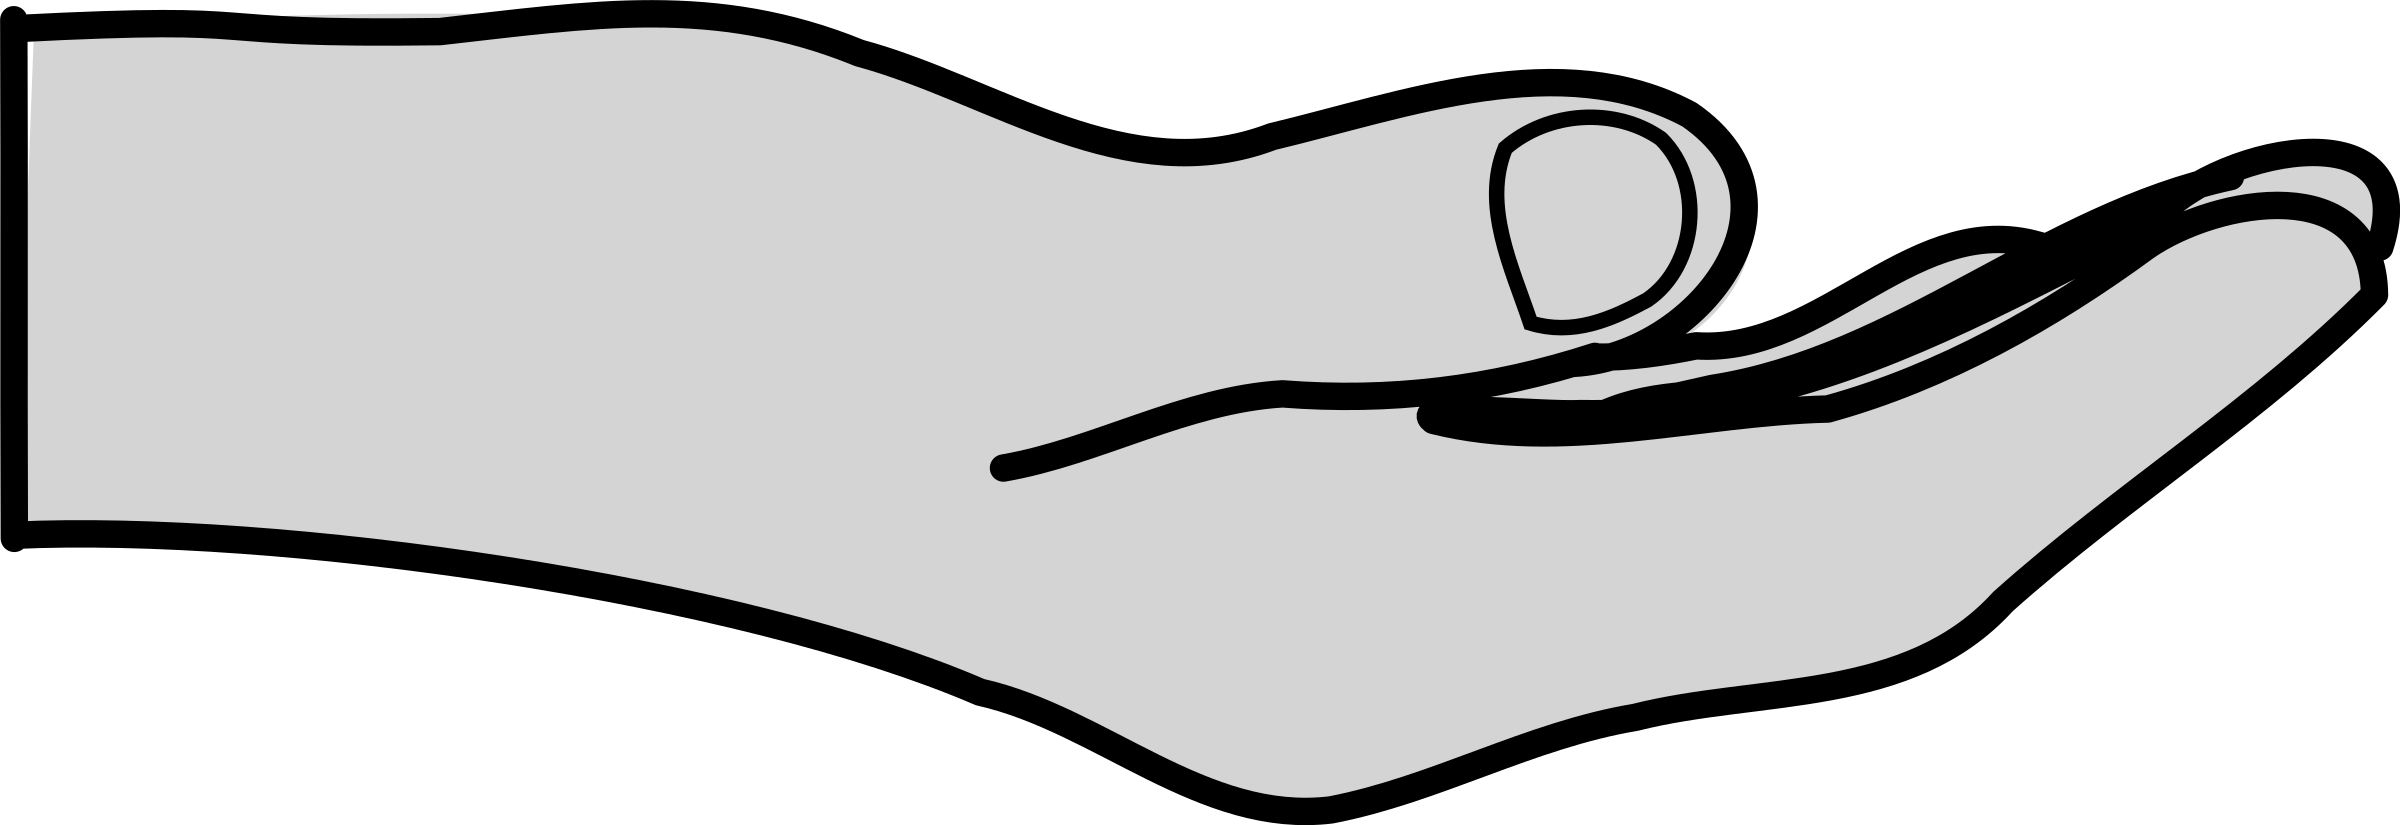 Hand clip outstretched. Open giving hands